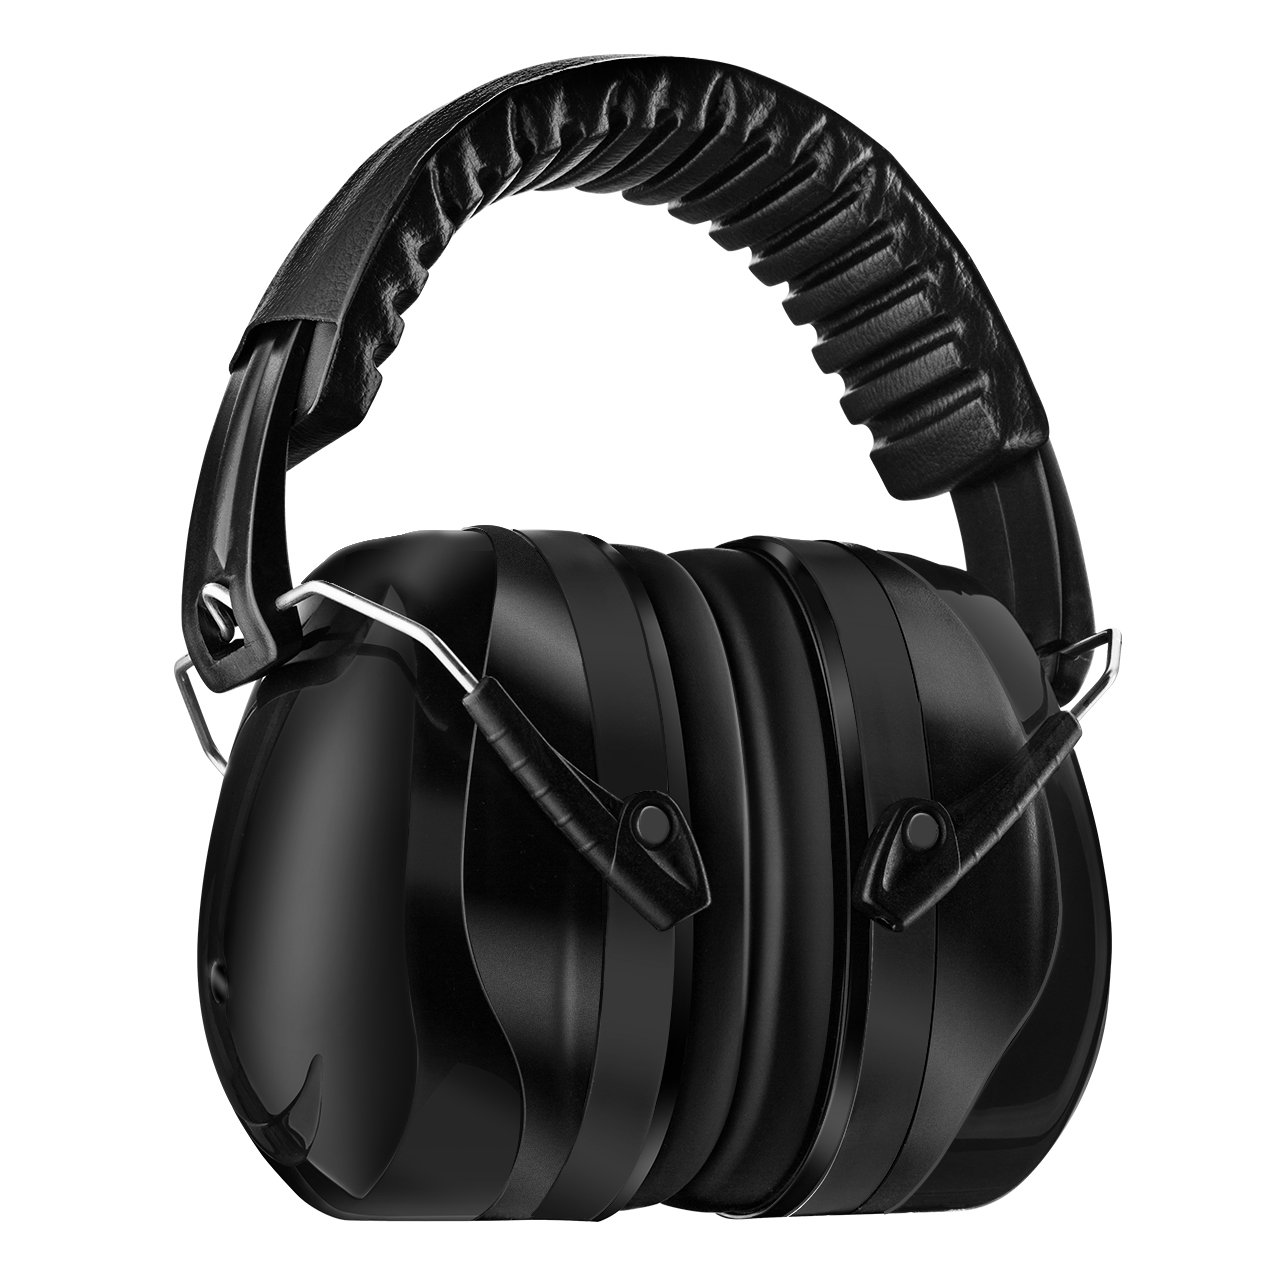 Homitt Sound Ear Muffs Hearing Protection Ear Defenders with Noise Cancelling Technology for Shooting, Hunting, Working or Construction – Black